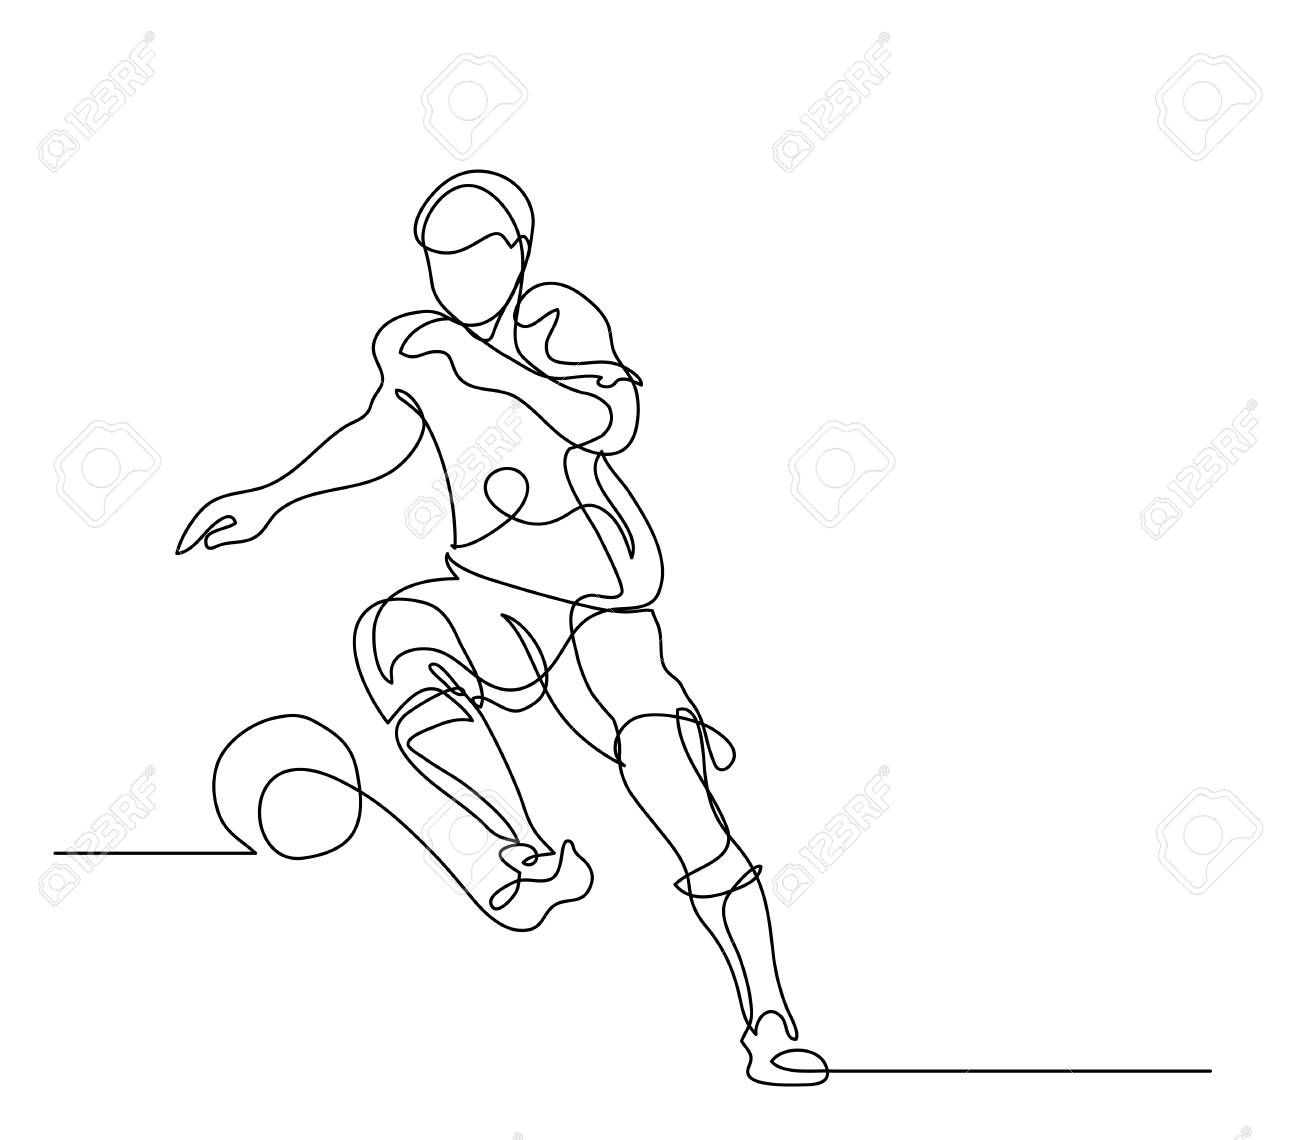 Continuous Line Drawing Illustration Shows A Football Player Kicks The Ball Soccer Vector Illustrat In 2020 Continuous Line Drawing Line Drawing Vector Illustration